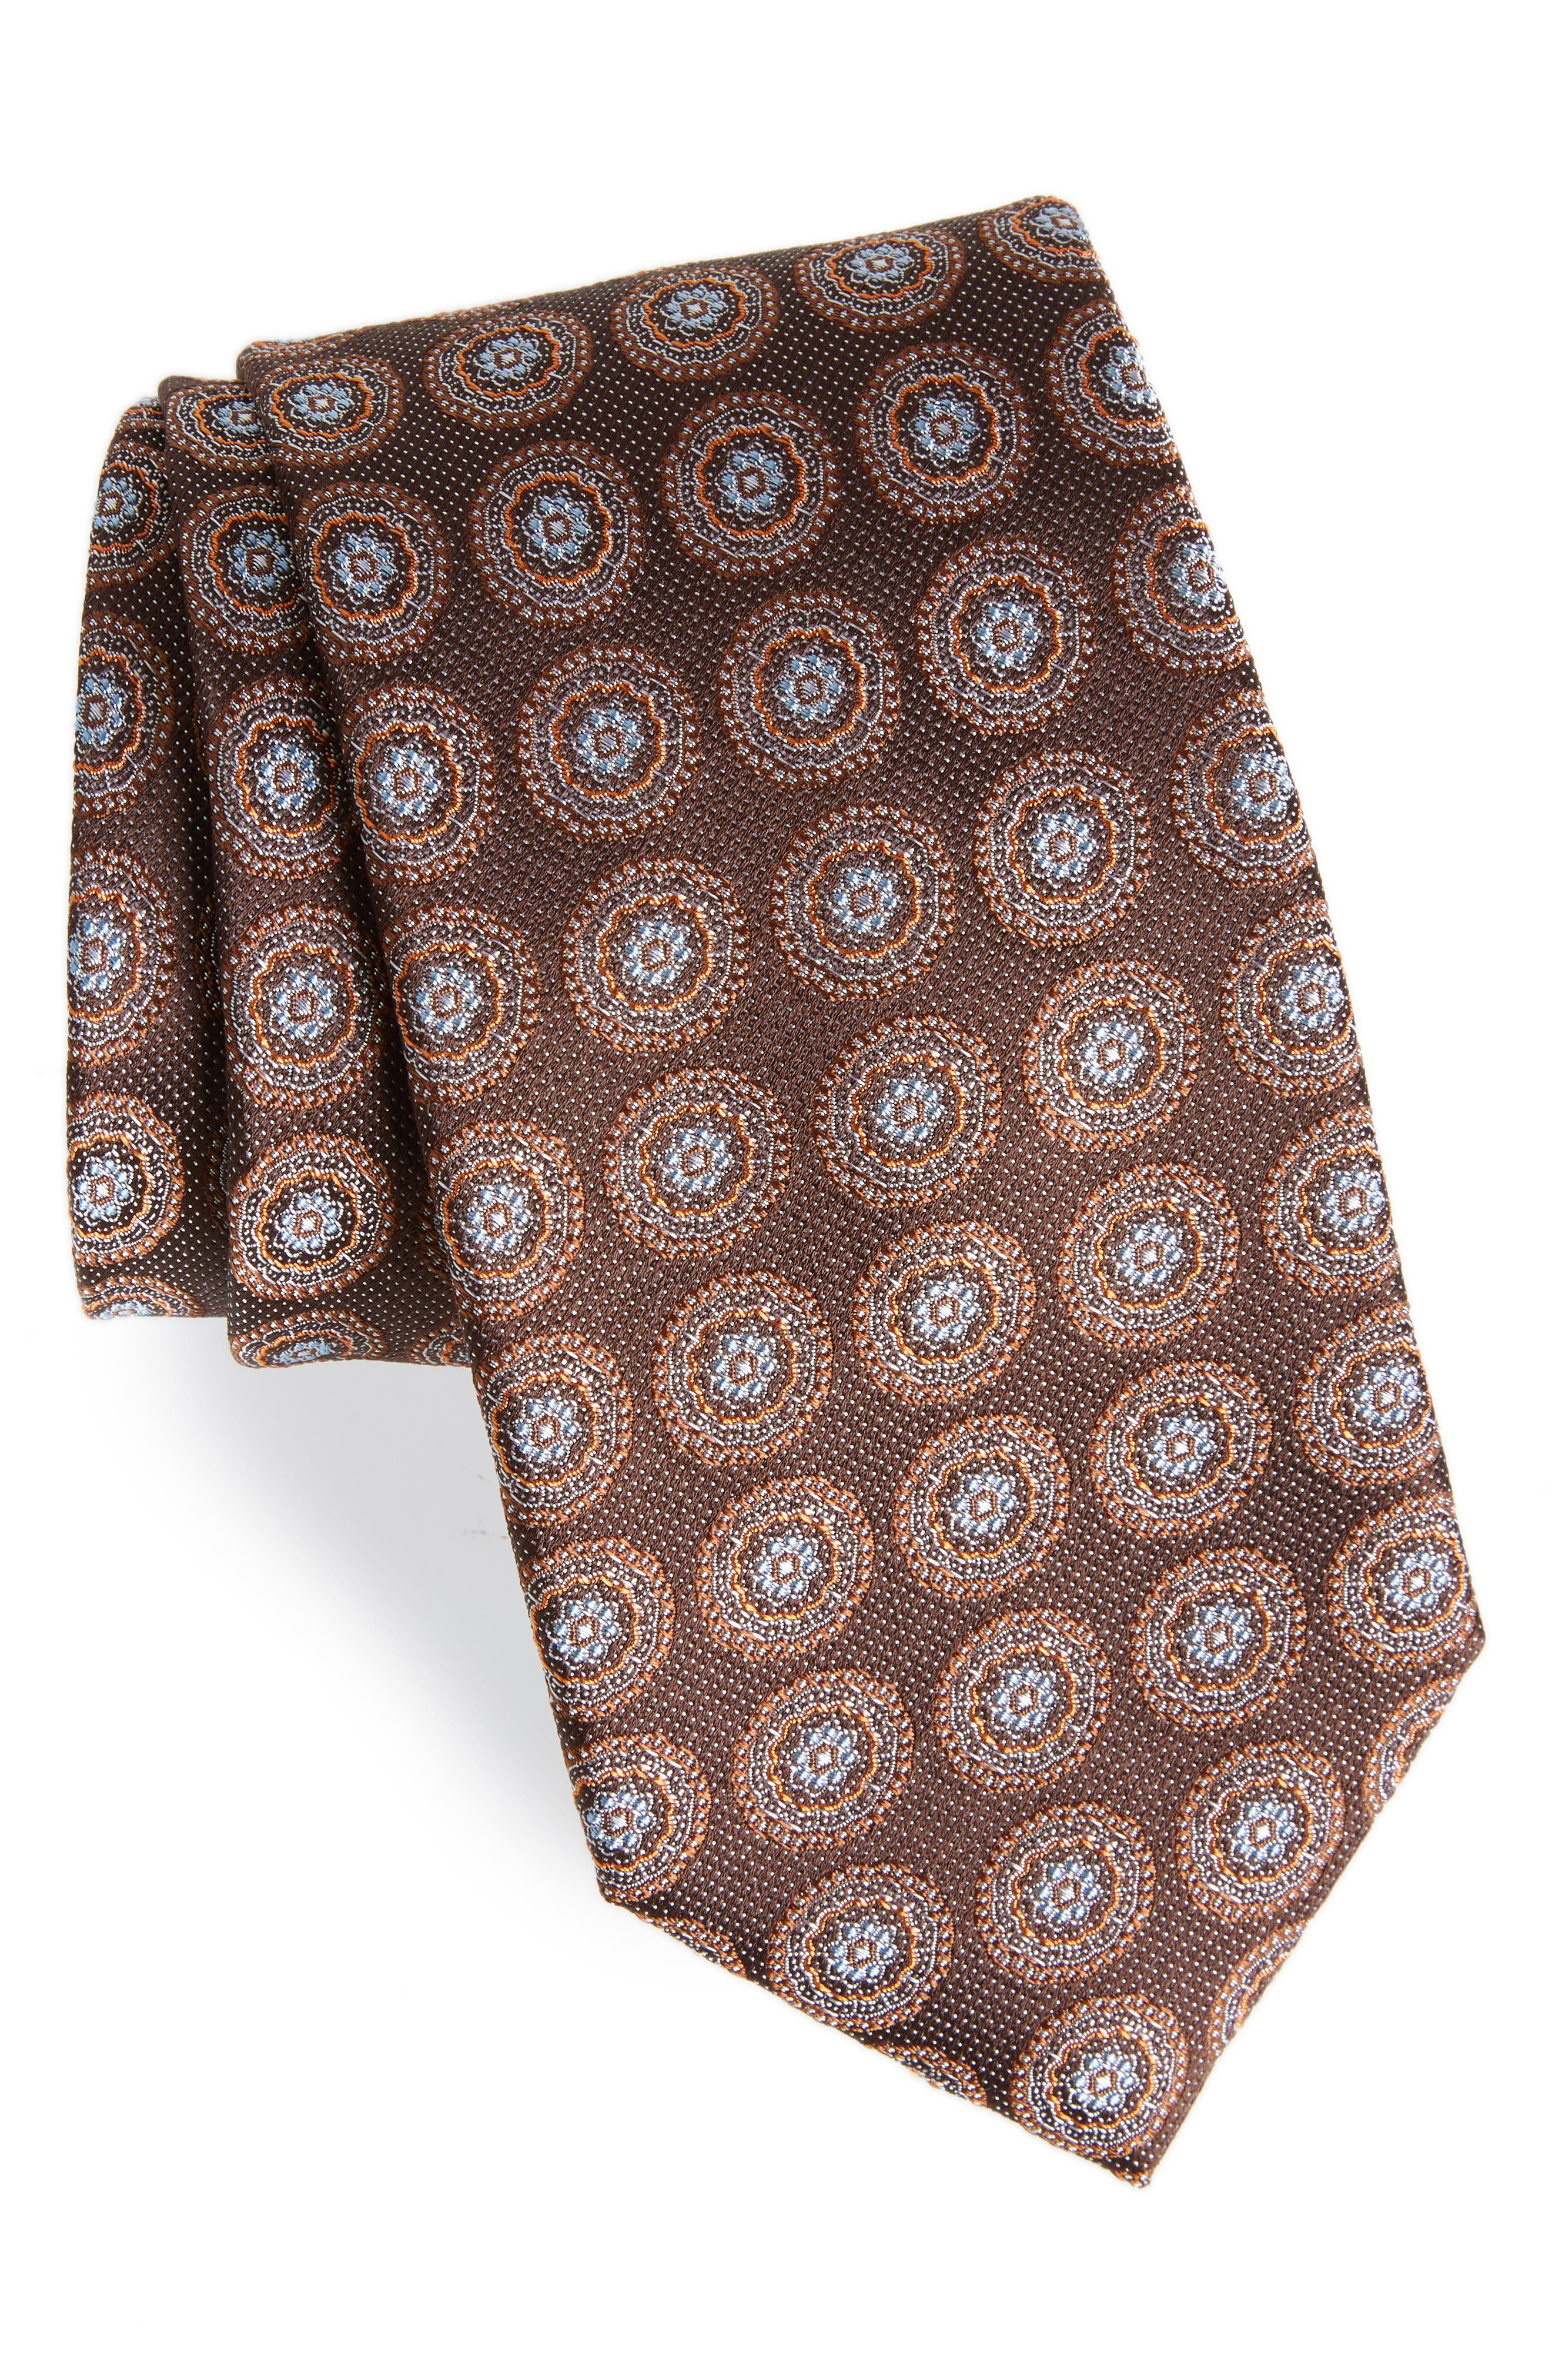 Pinpoint Medallion Silk Tie,                             Main thumbnail 1, color,                             200